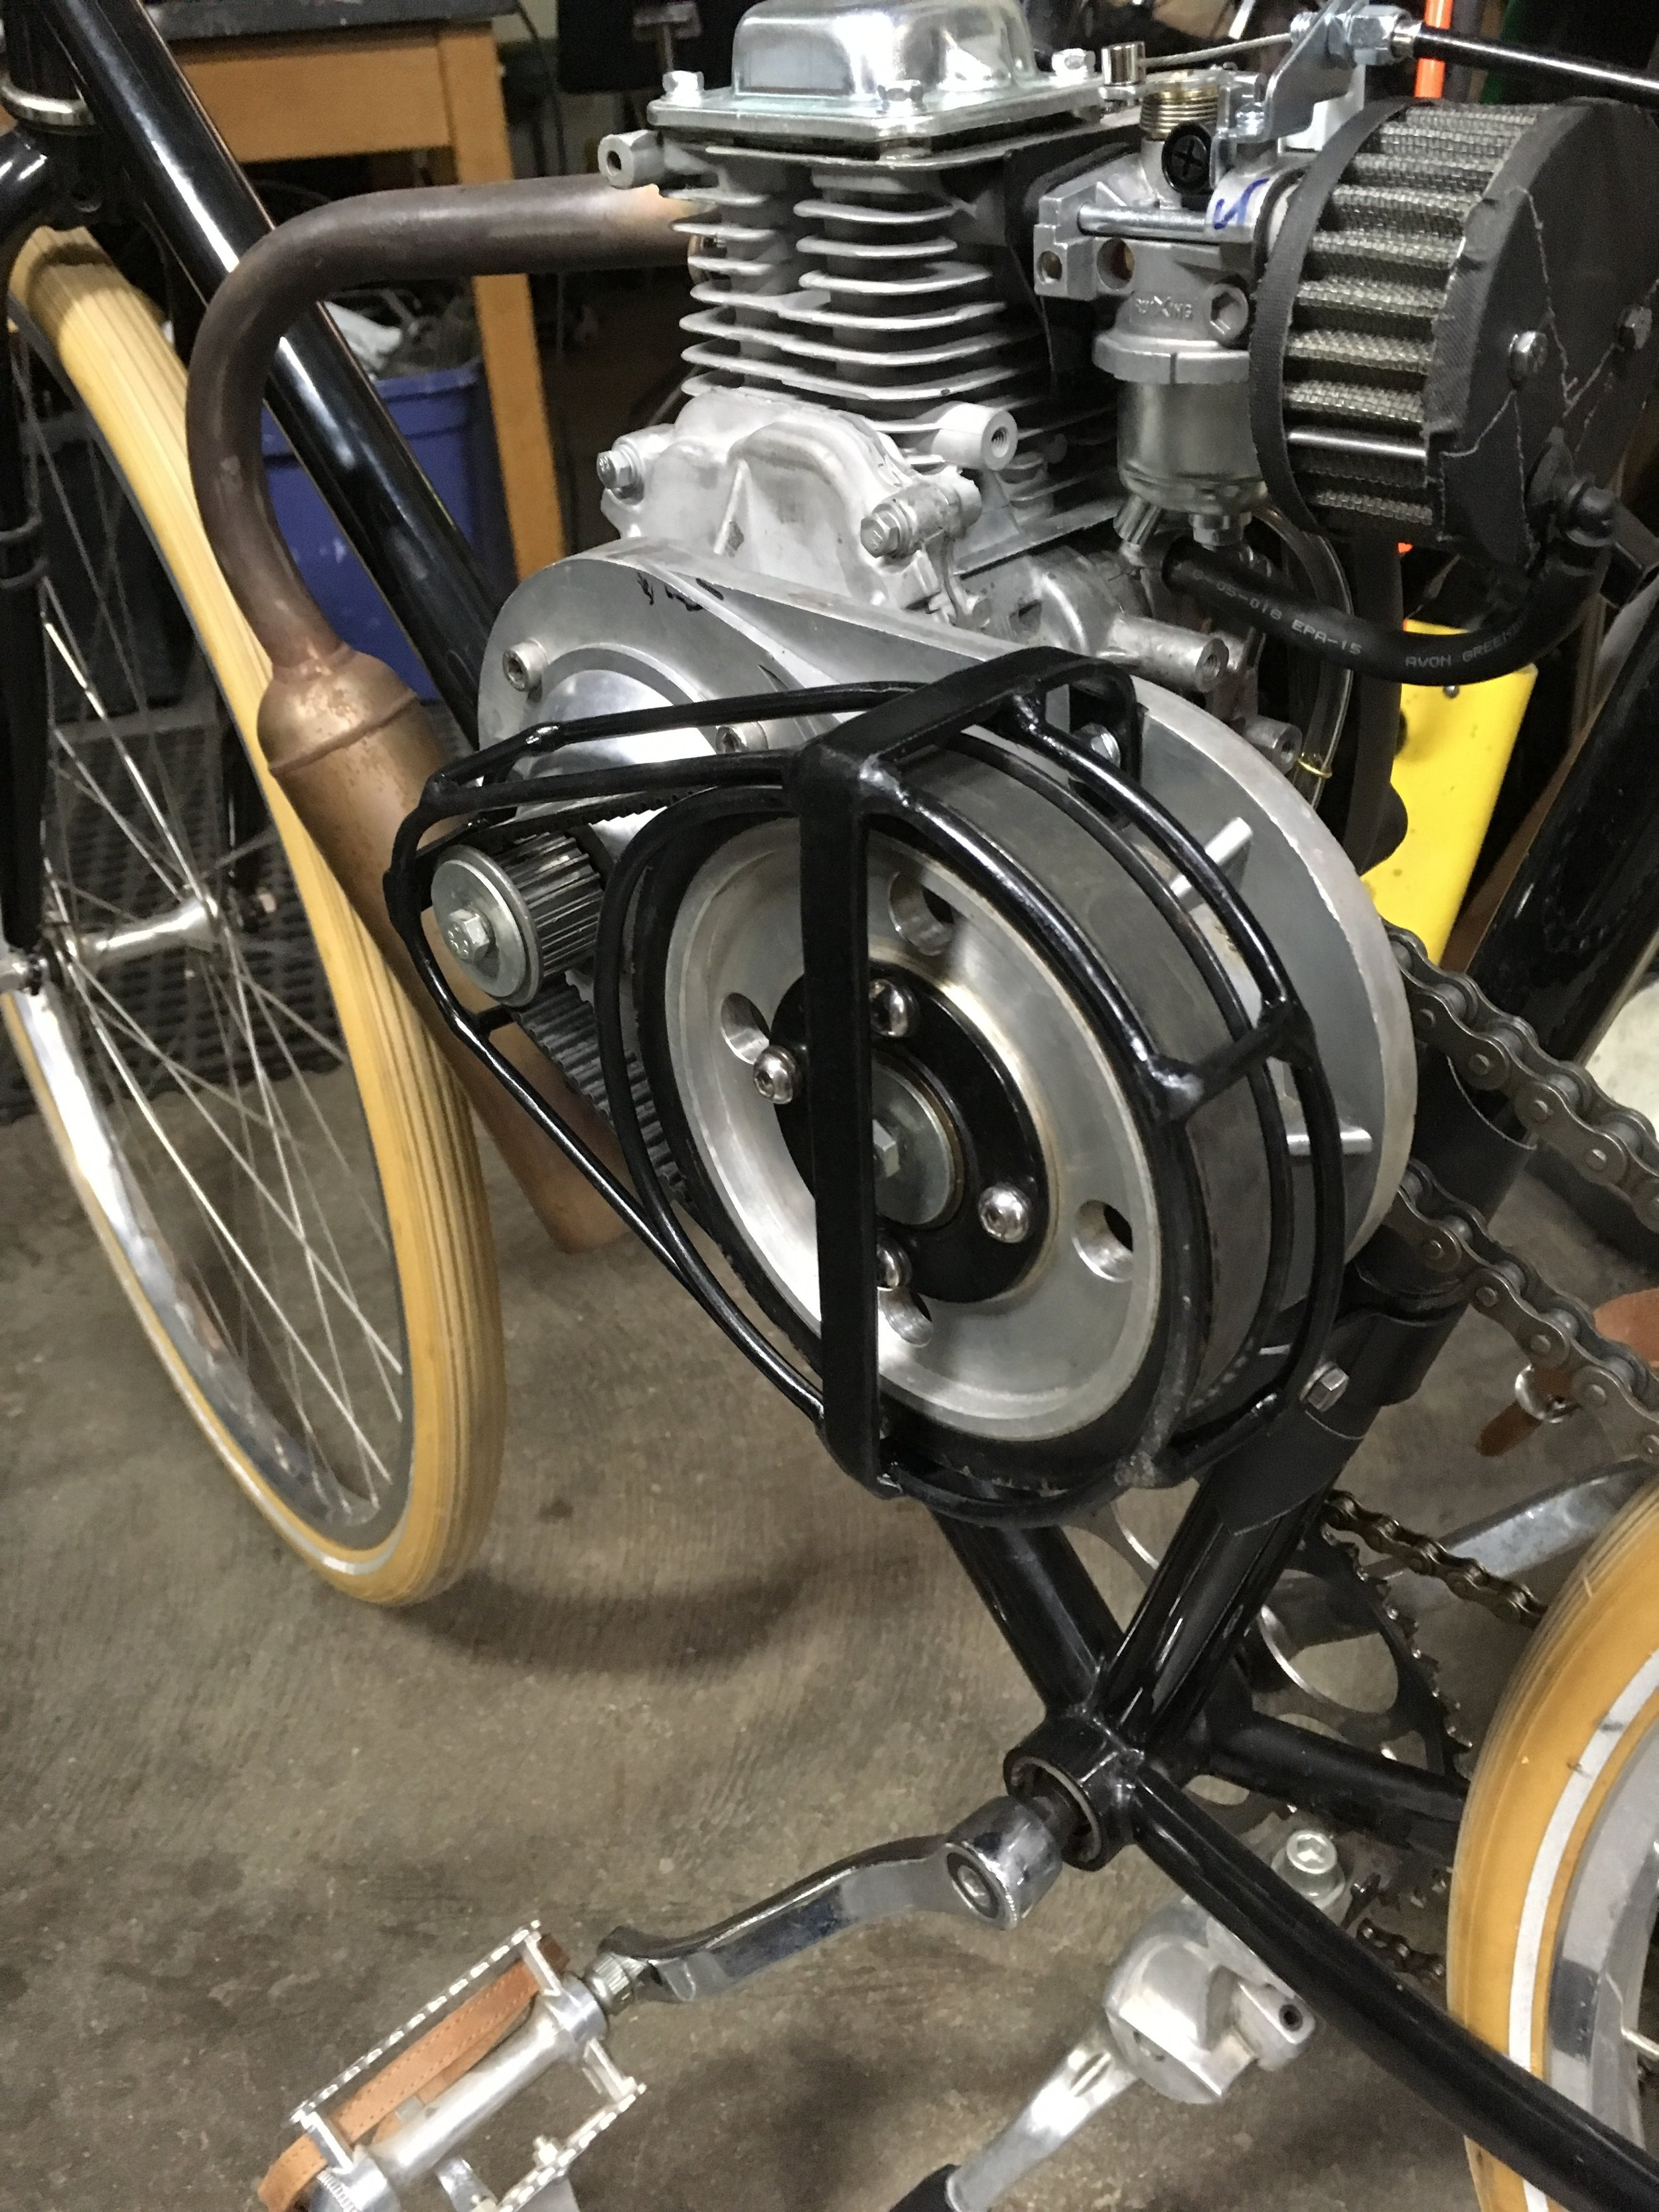 The guard mounted up. When I first test rode the bike, my leg contacted the exposed pulley, prompting this mod.